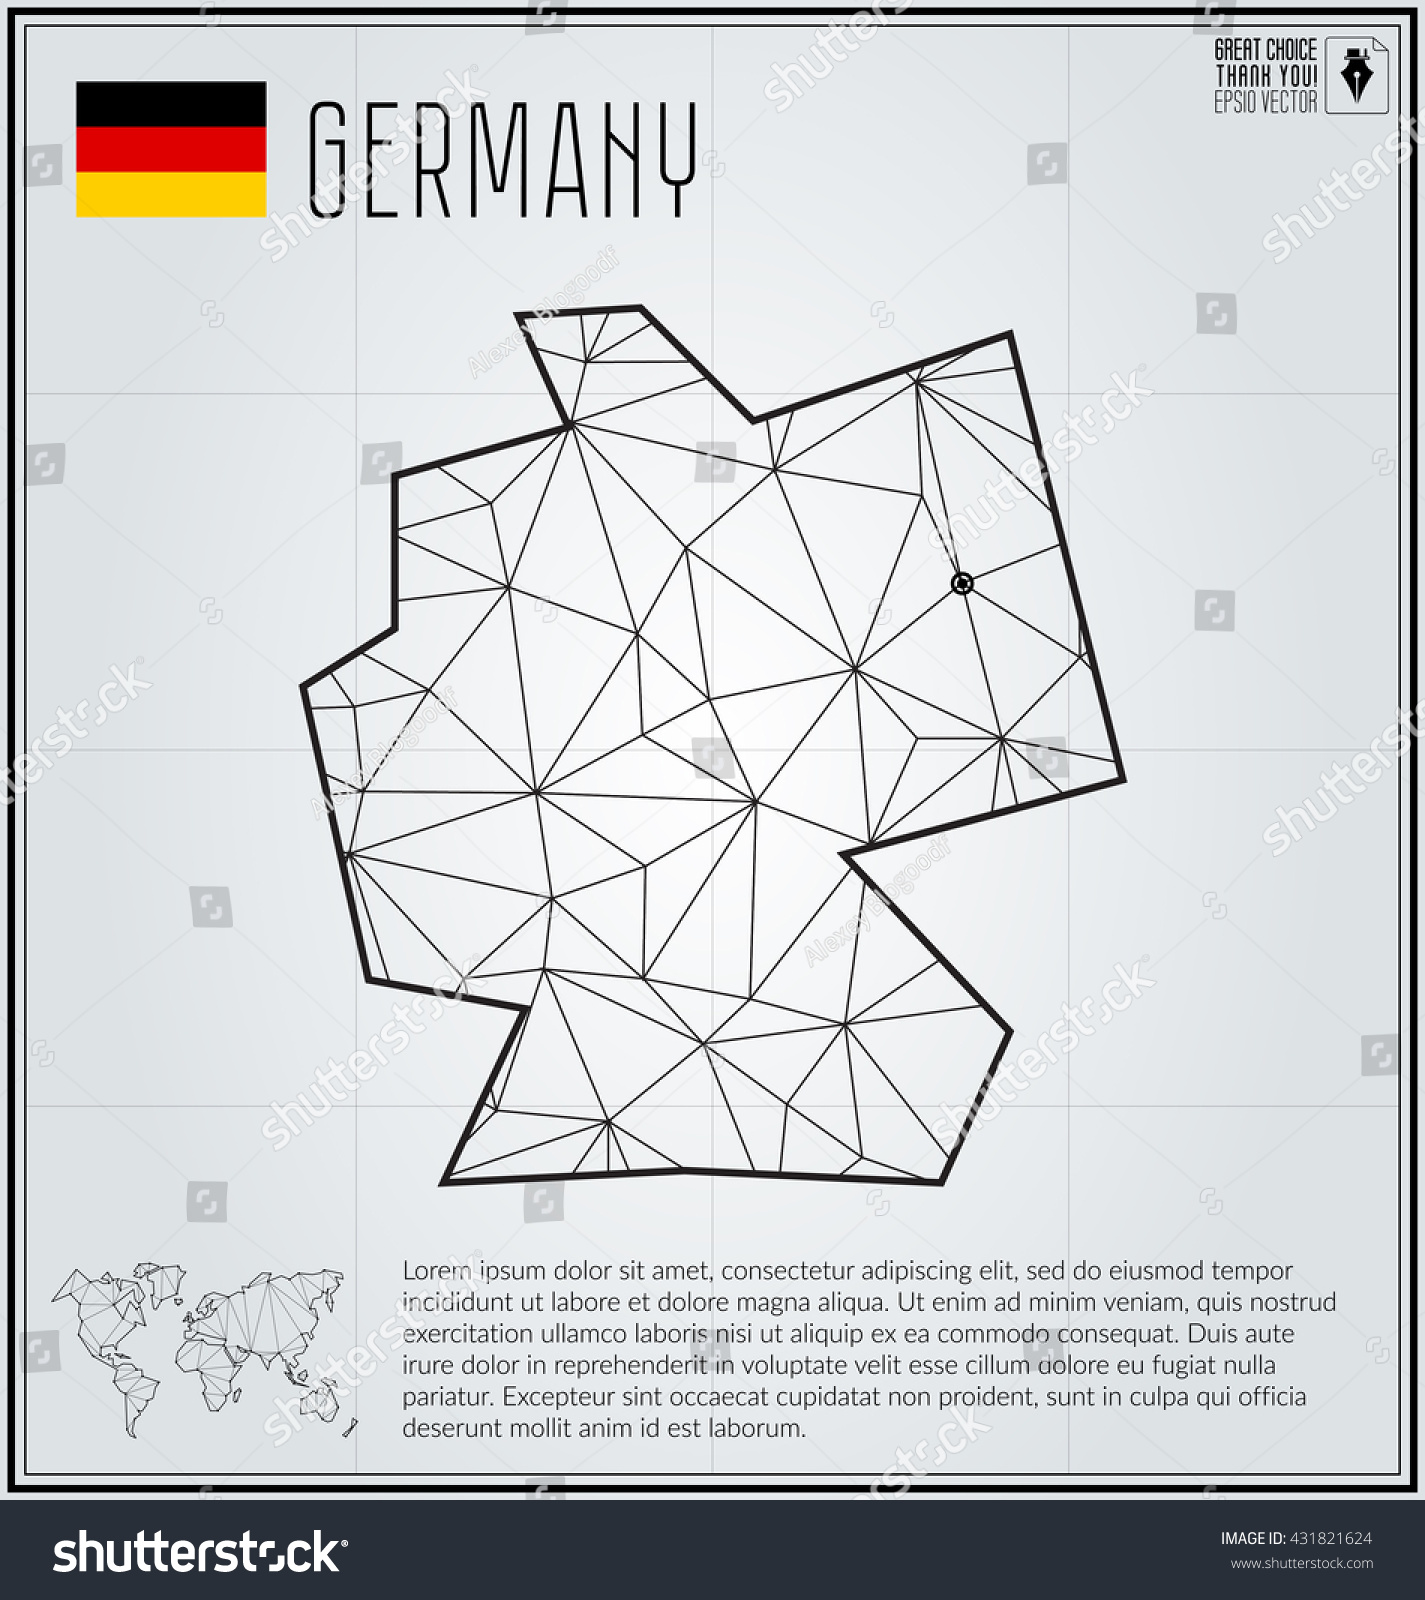 Germany Map Drawing World Map Algodones Mexico Map Game Of Thrones - Germany map drawing